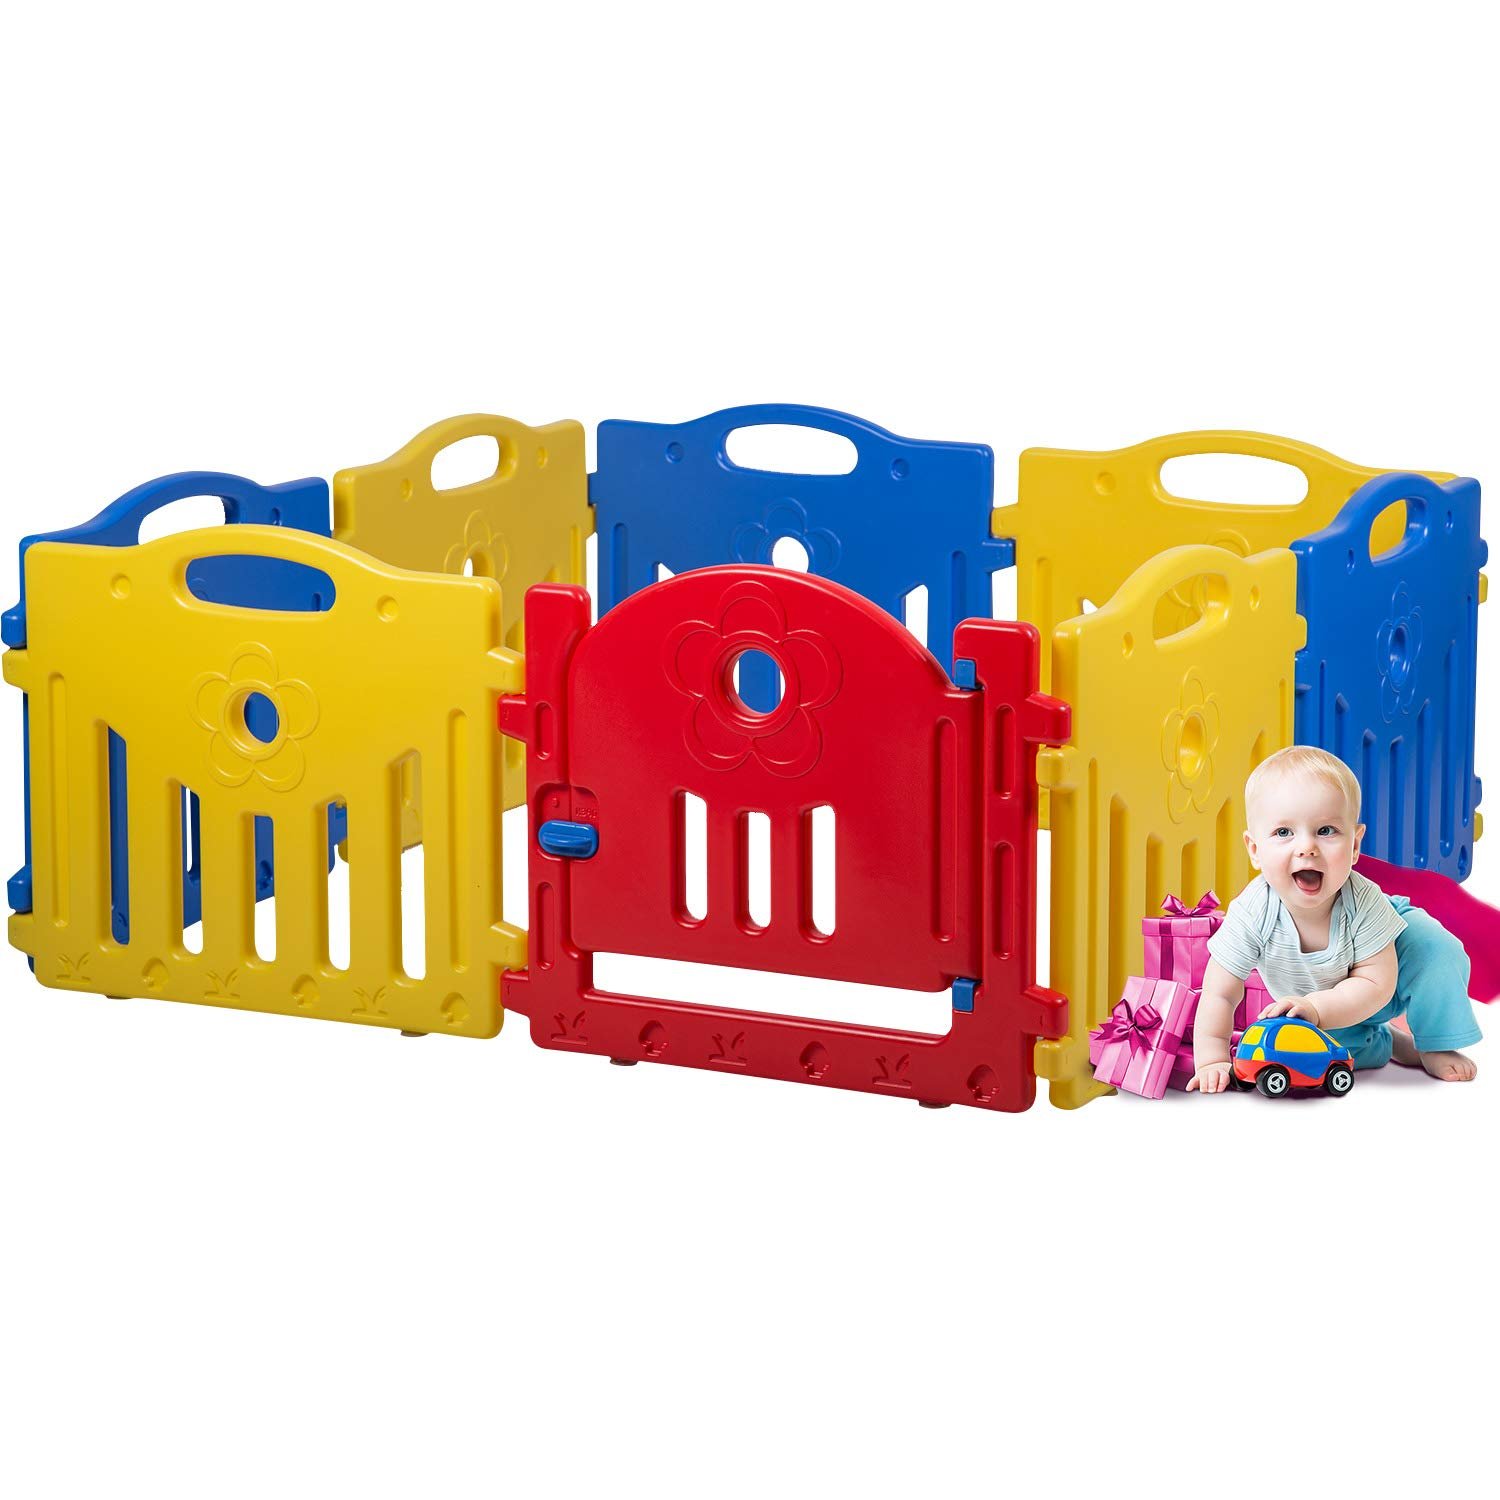 Adjustable Baby Playpen Kids 8 Panel Safety Play Center Yard Home Indoor Outdoor Pen by FDW (Image #1)